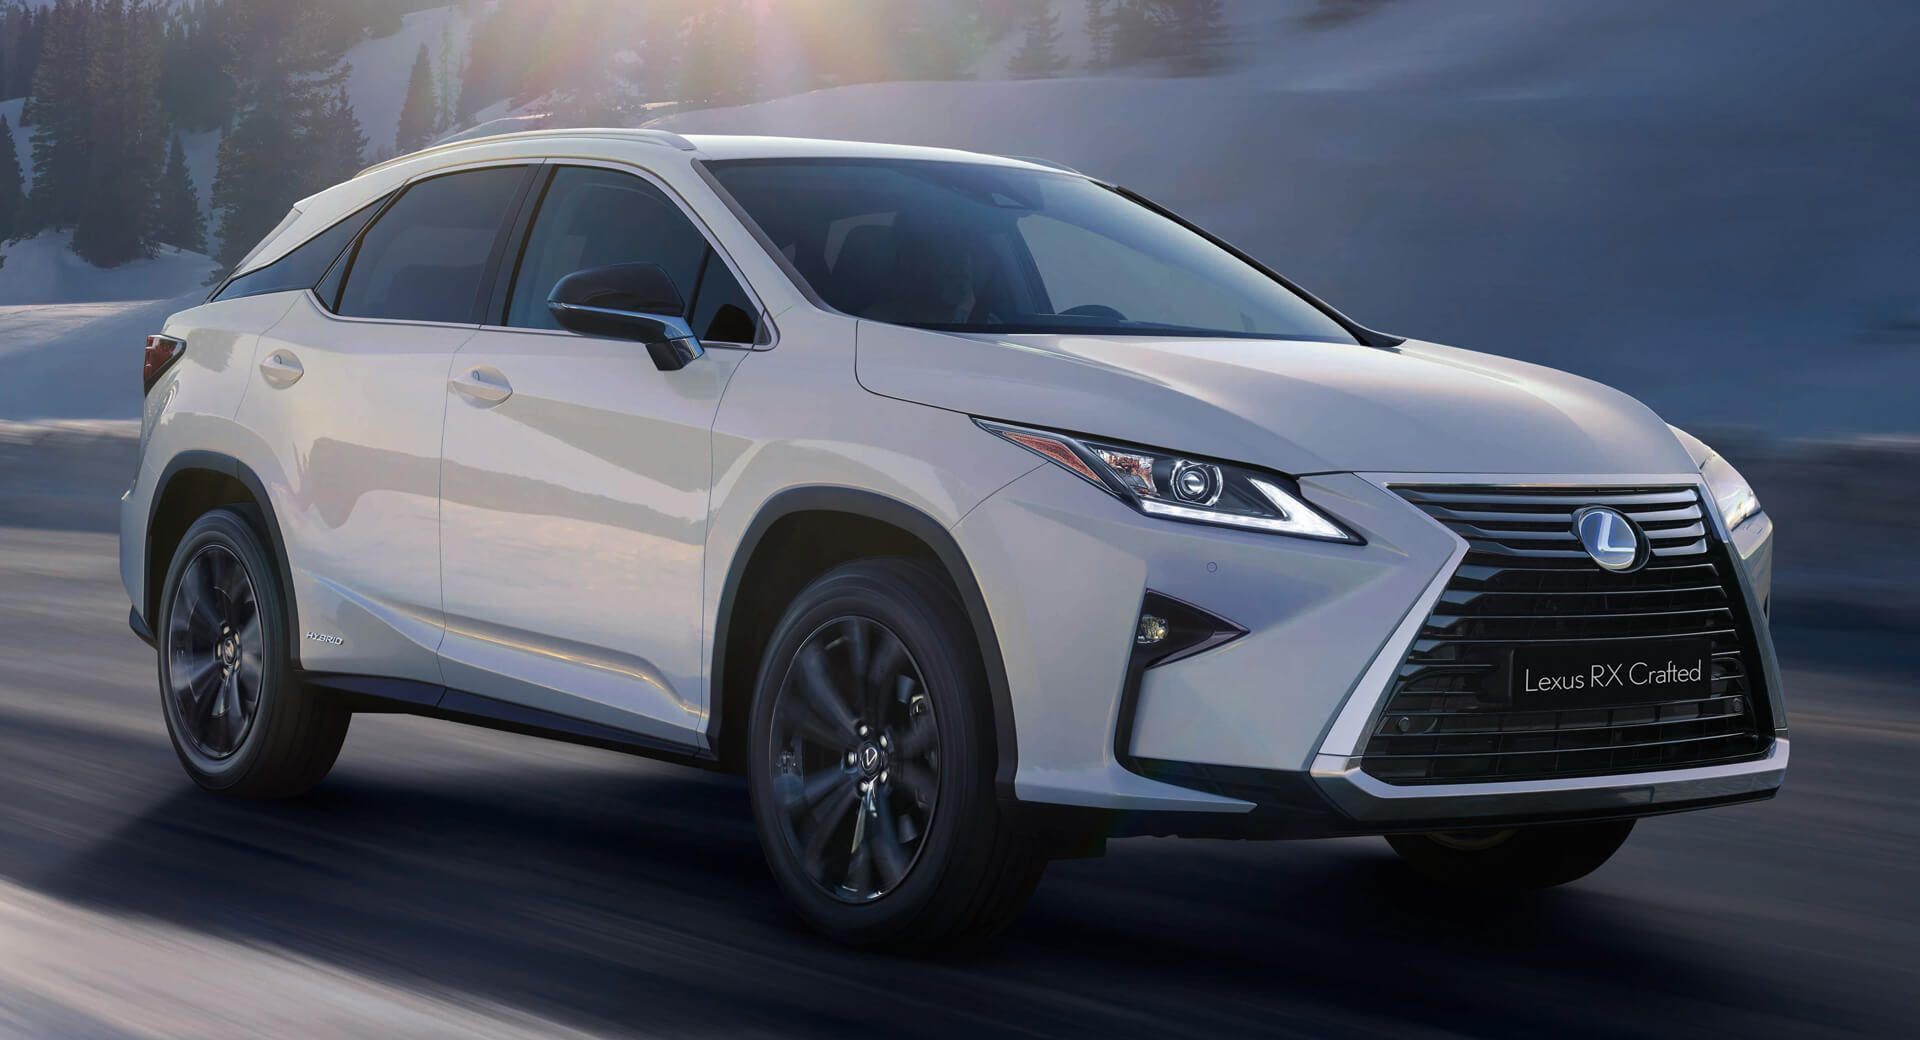 Lexus RX Crafted Limited Edition Brings Extra Kit To